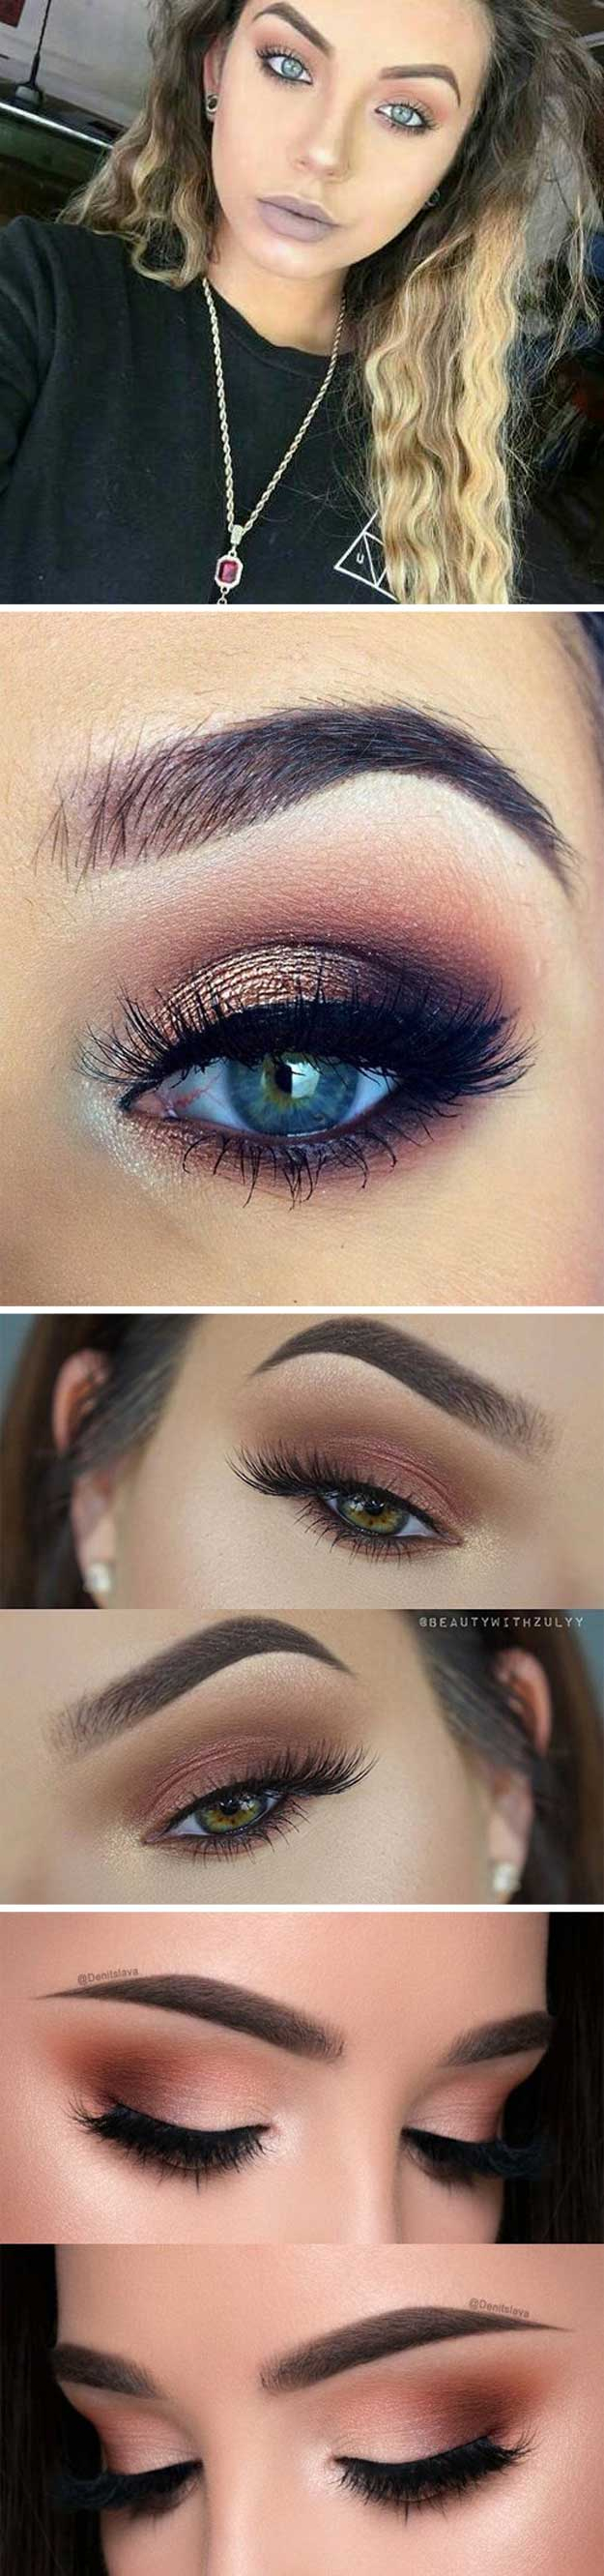 Best Way To Do Makeup For Blue Eyes 35 Wedding Makeup For Blue Eyes The Goddess